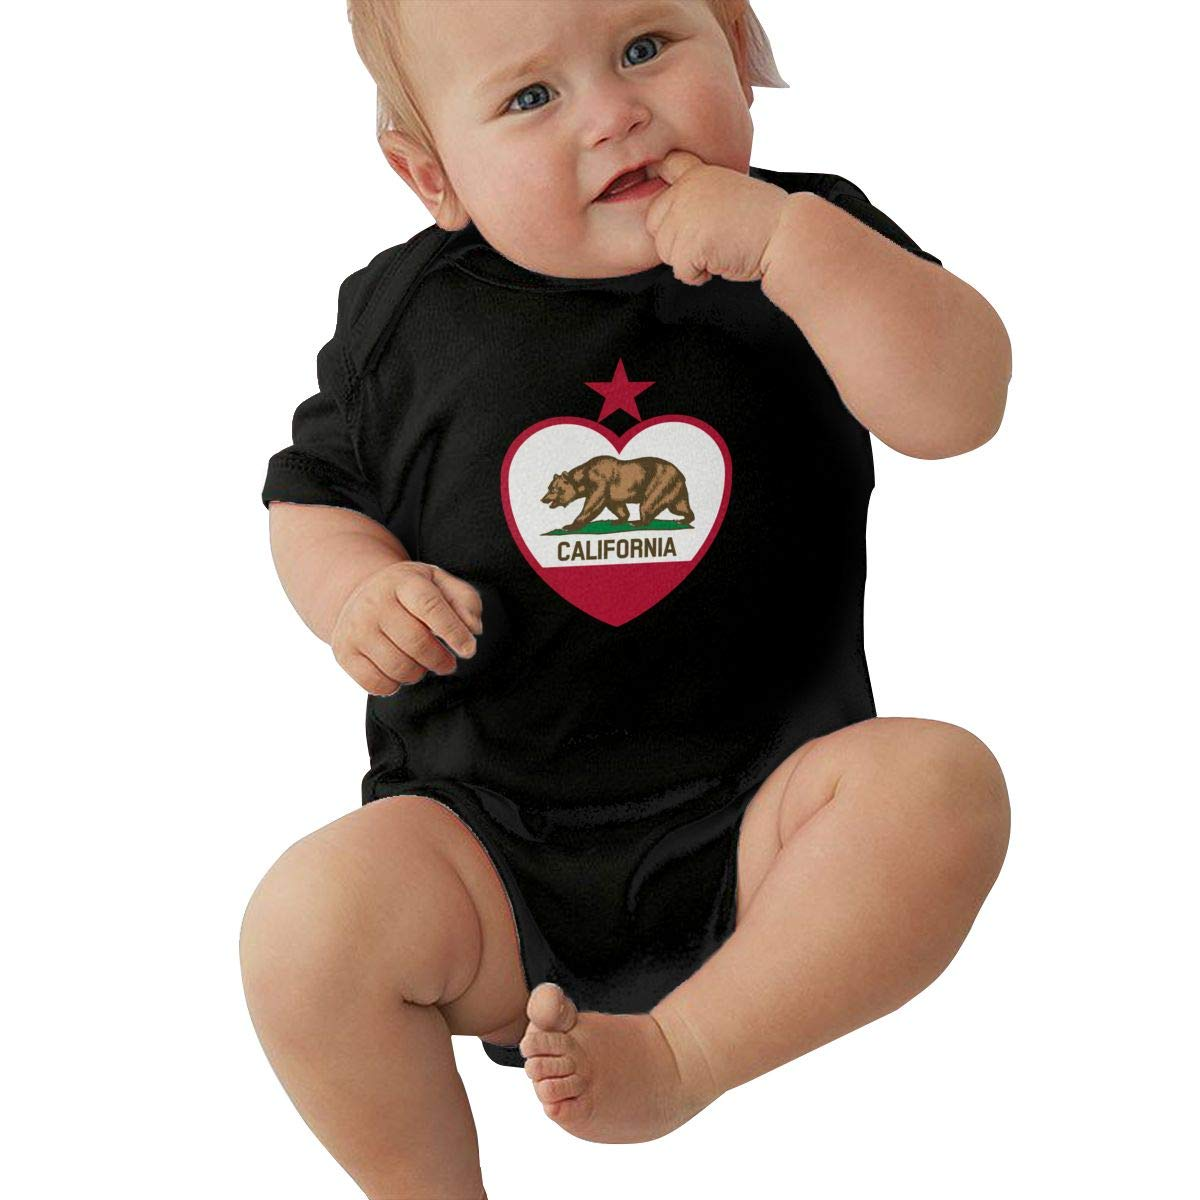 Dfenere California Flag Fashion Newborn Baby Short Sleeve Bodysuit Romper Infant Summer Clothing Black